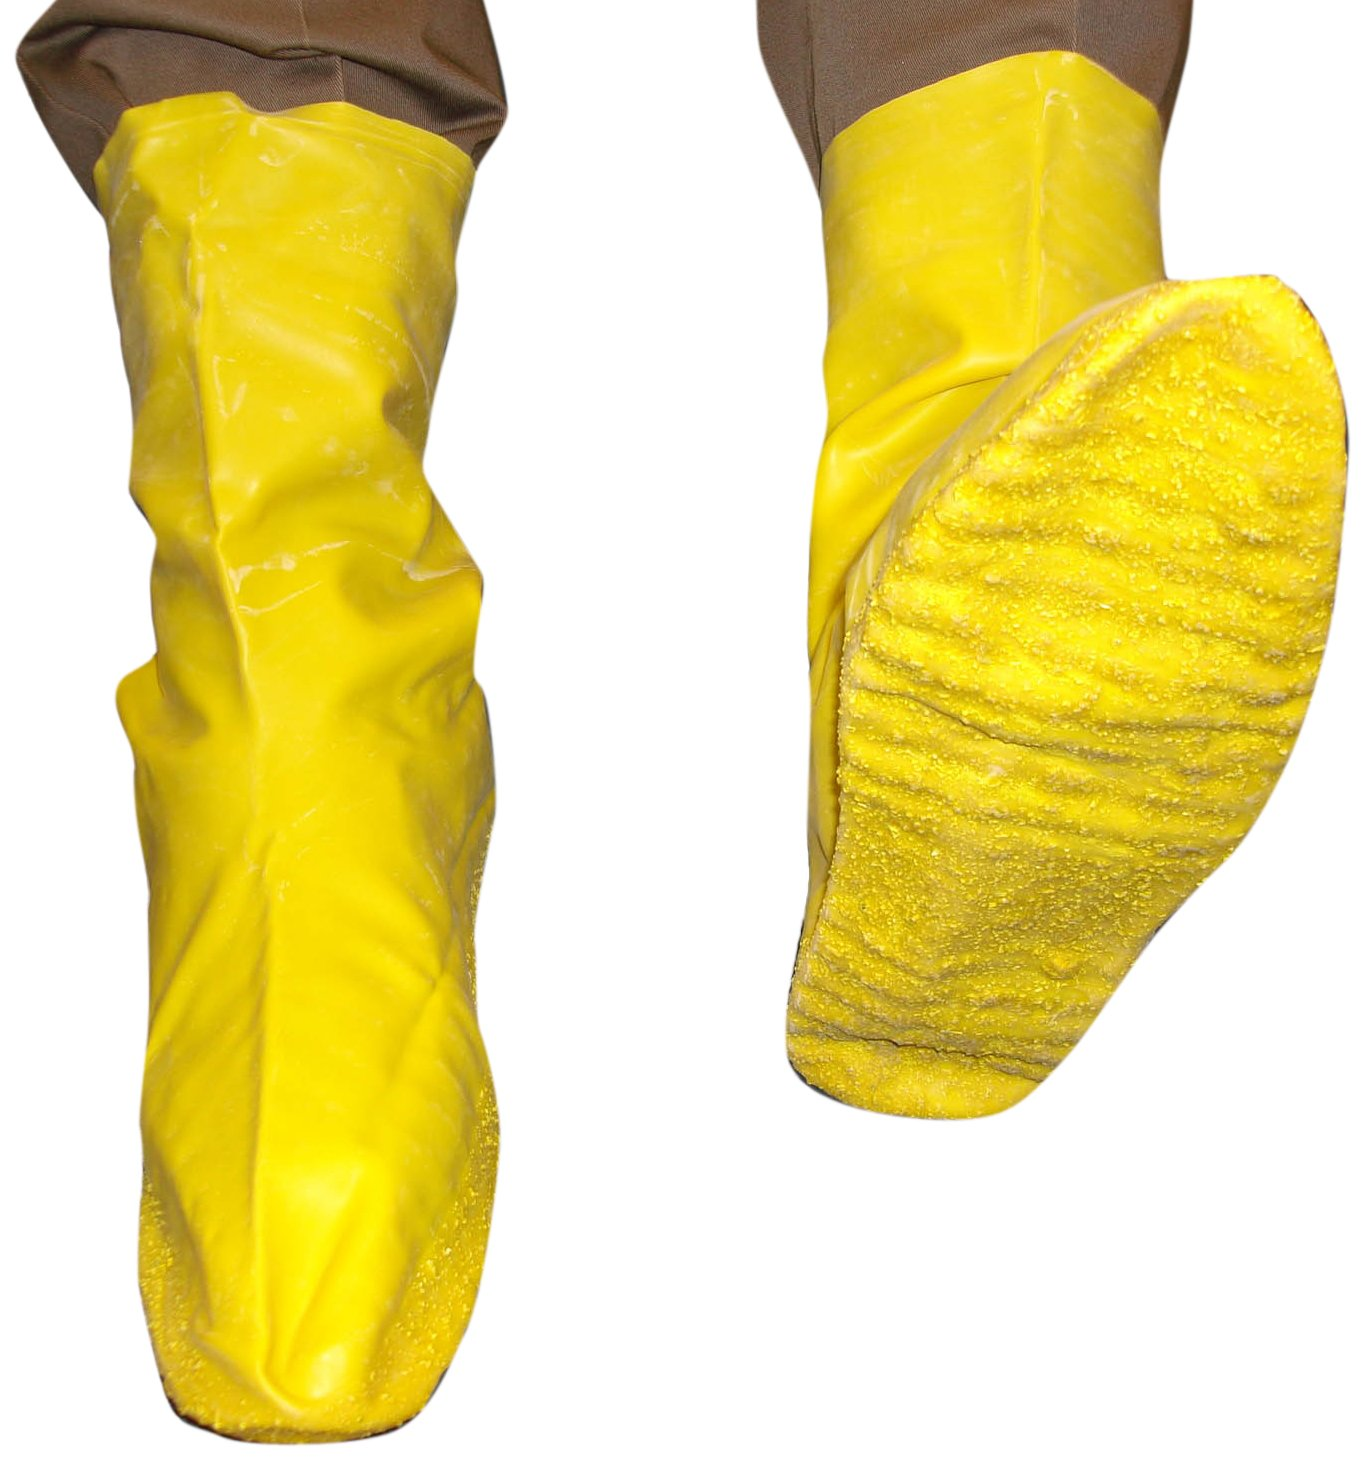 Enviroguard Latex Nuke Boot Cover, Disposable, Yellow, X-Large (Case of 50)